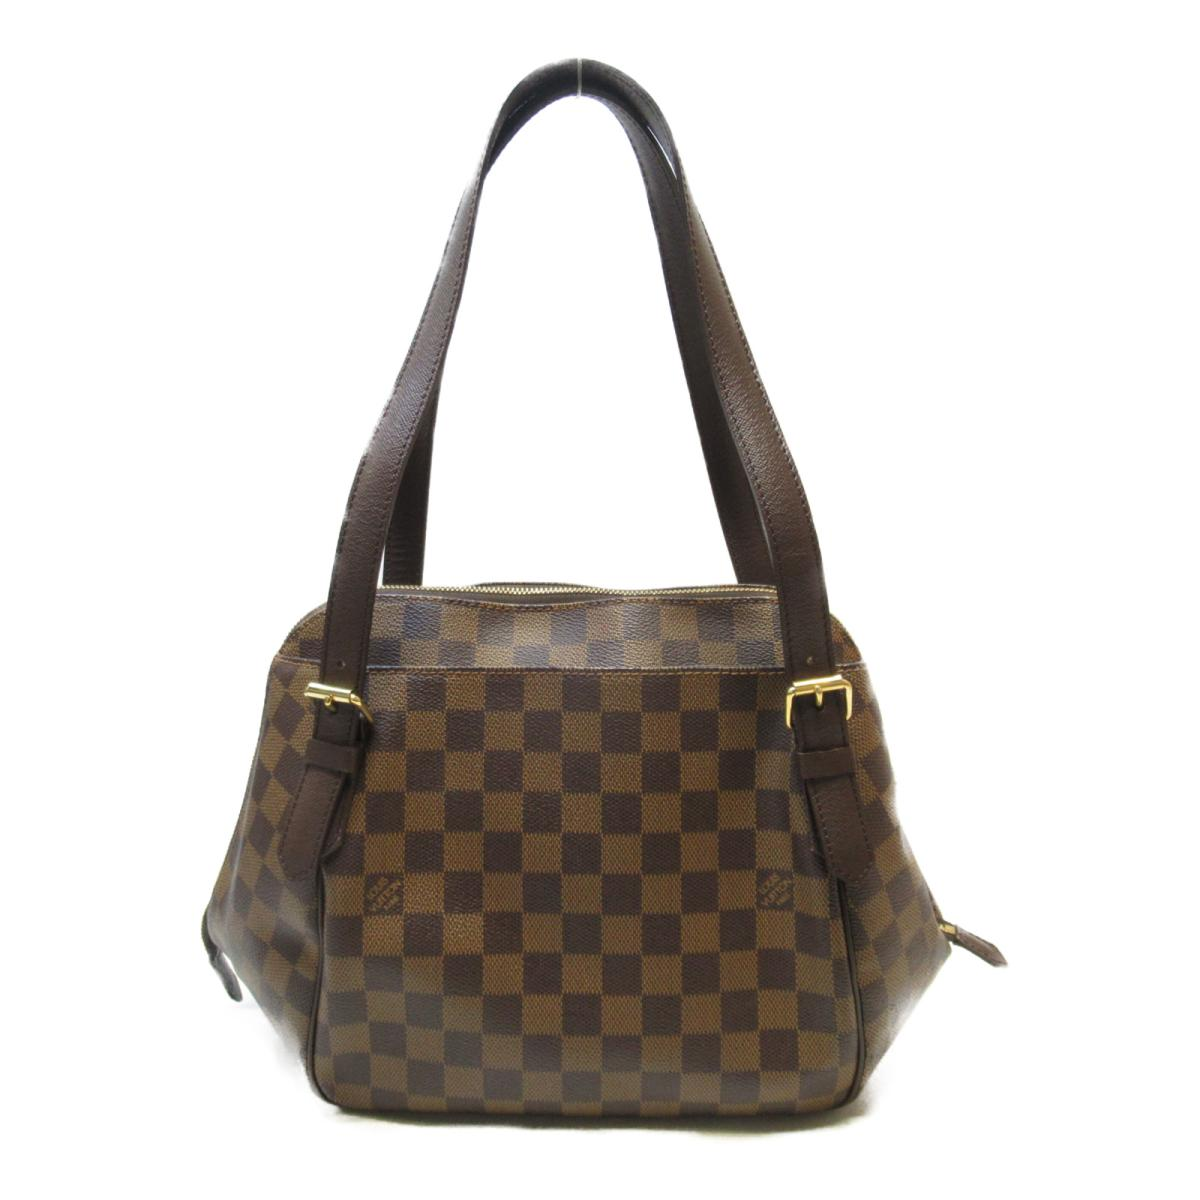 LOUIS VUITTON バッグ N51174 棋盤格肩背六角包  Belem MM N51174